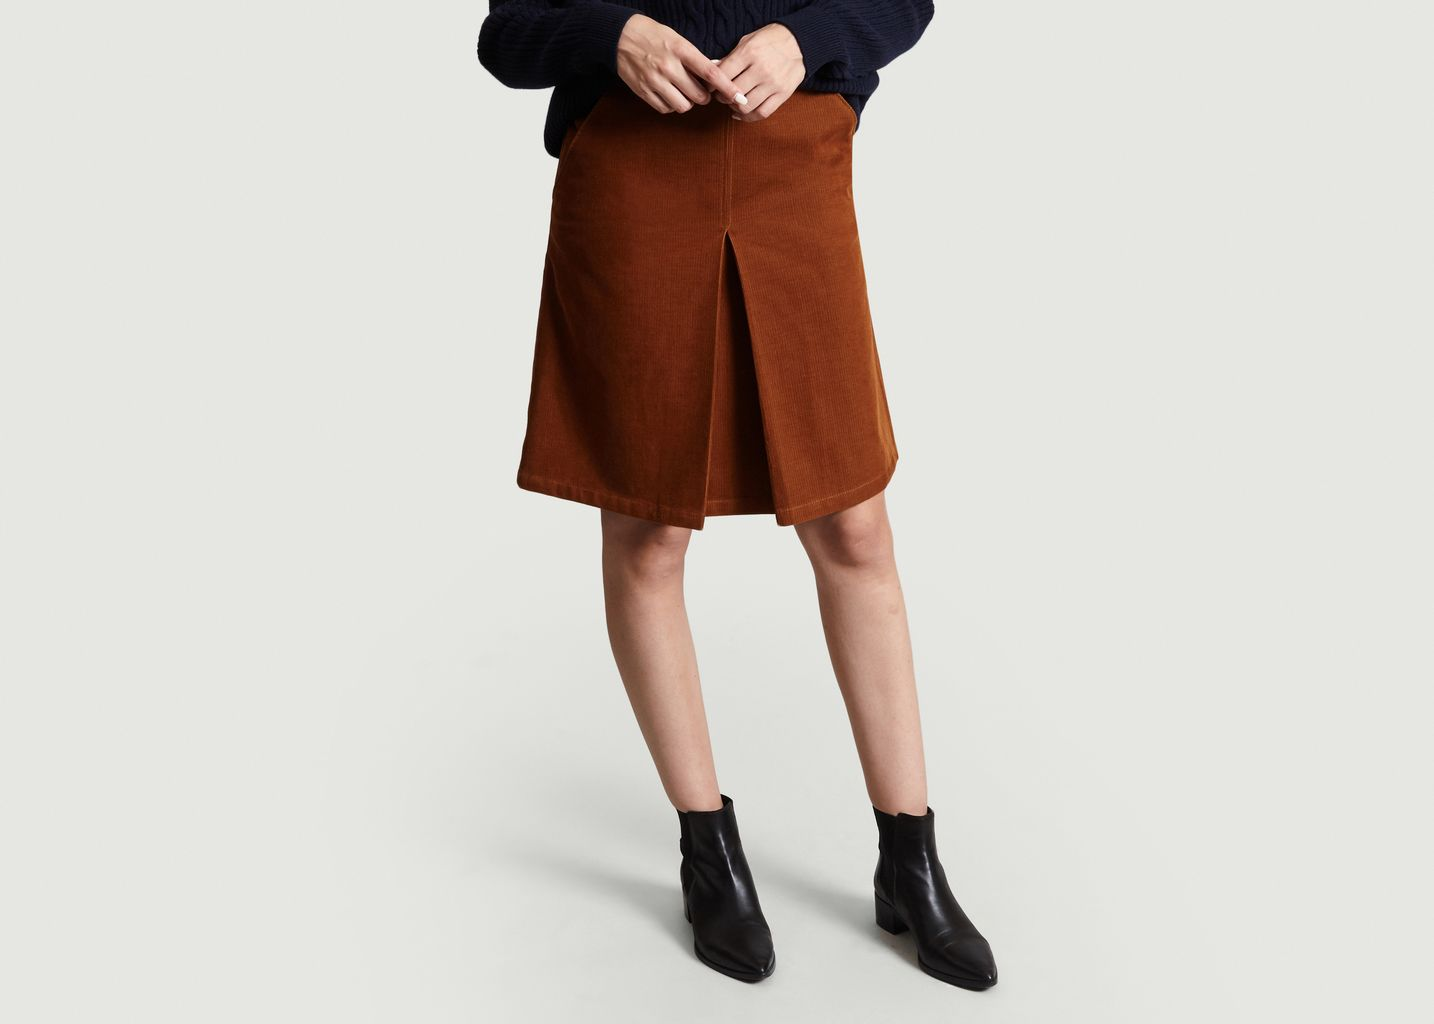 Jupe Velours Coco - A.P.C.